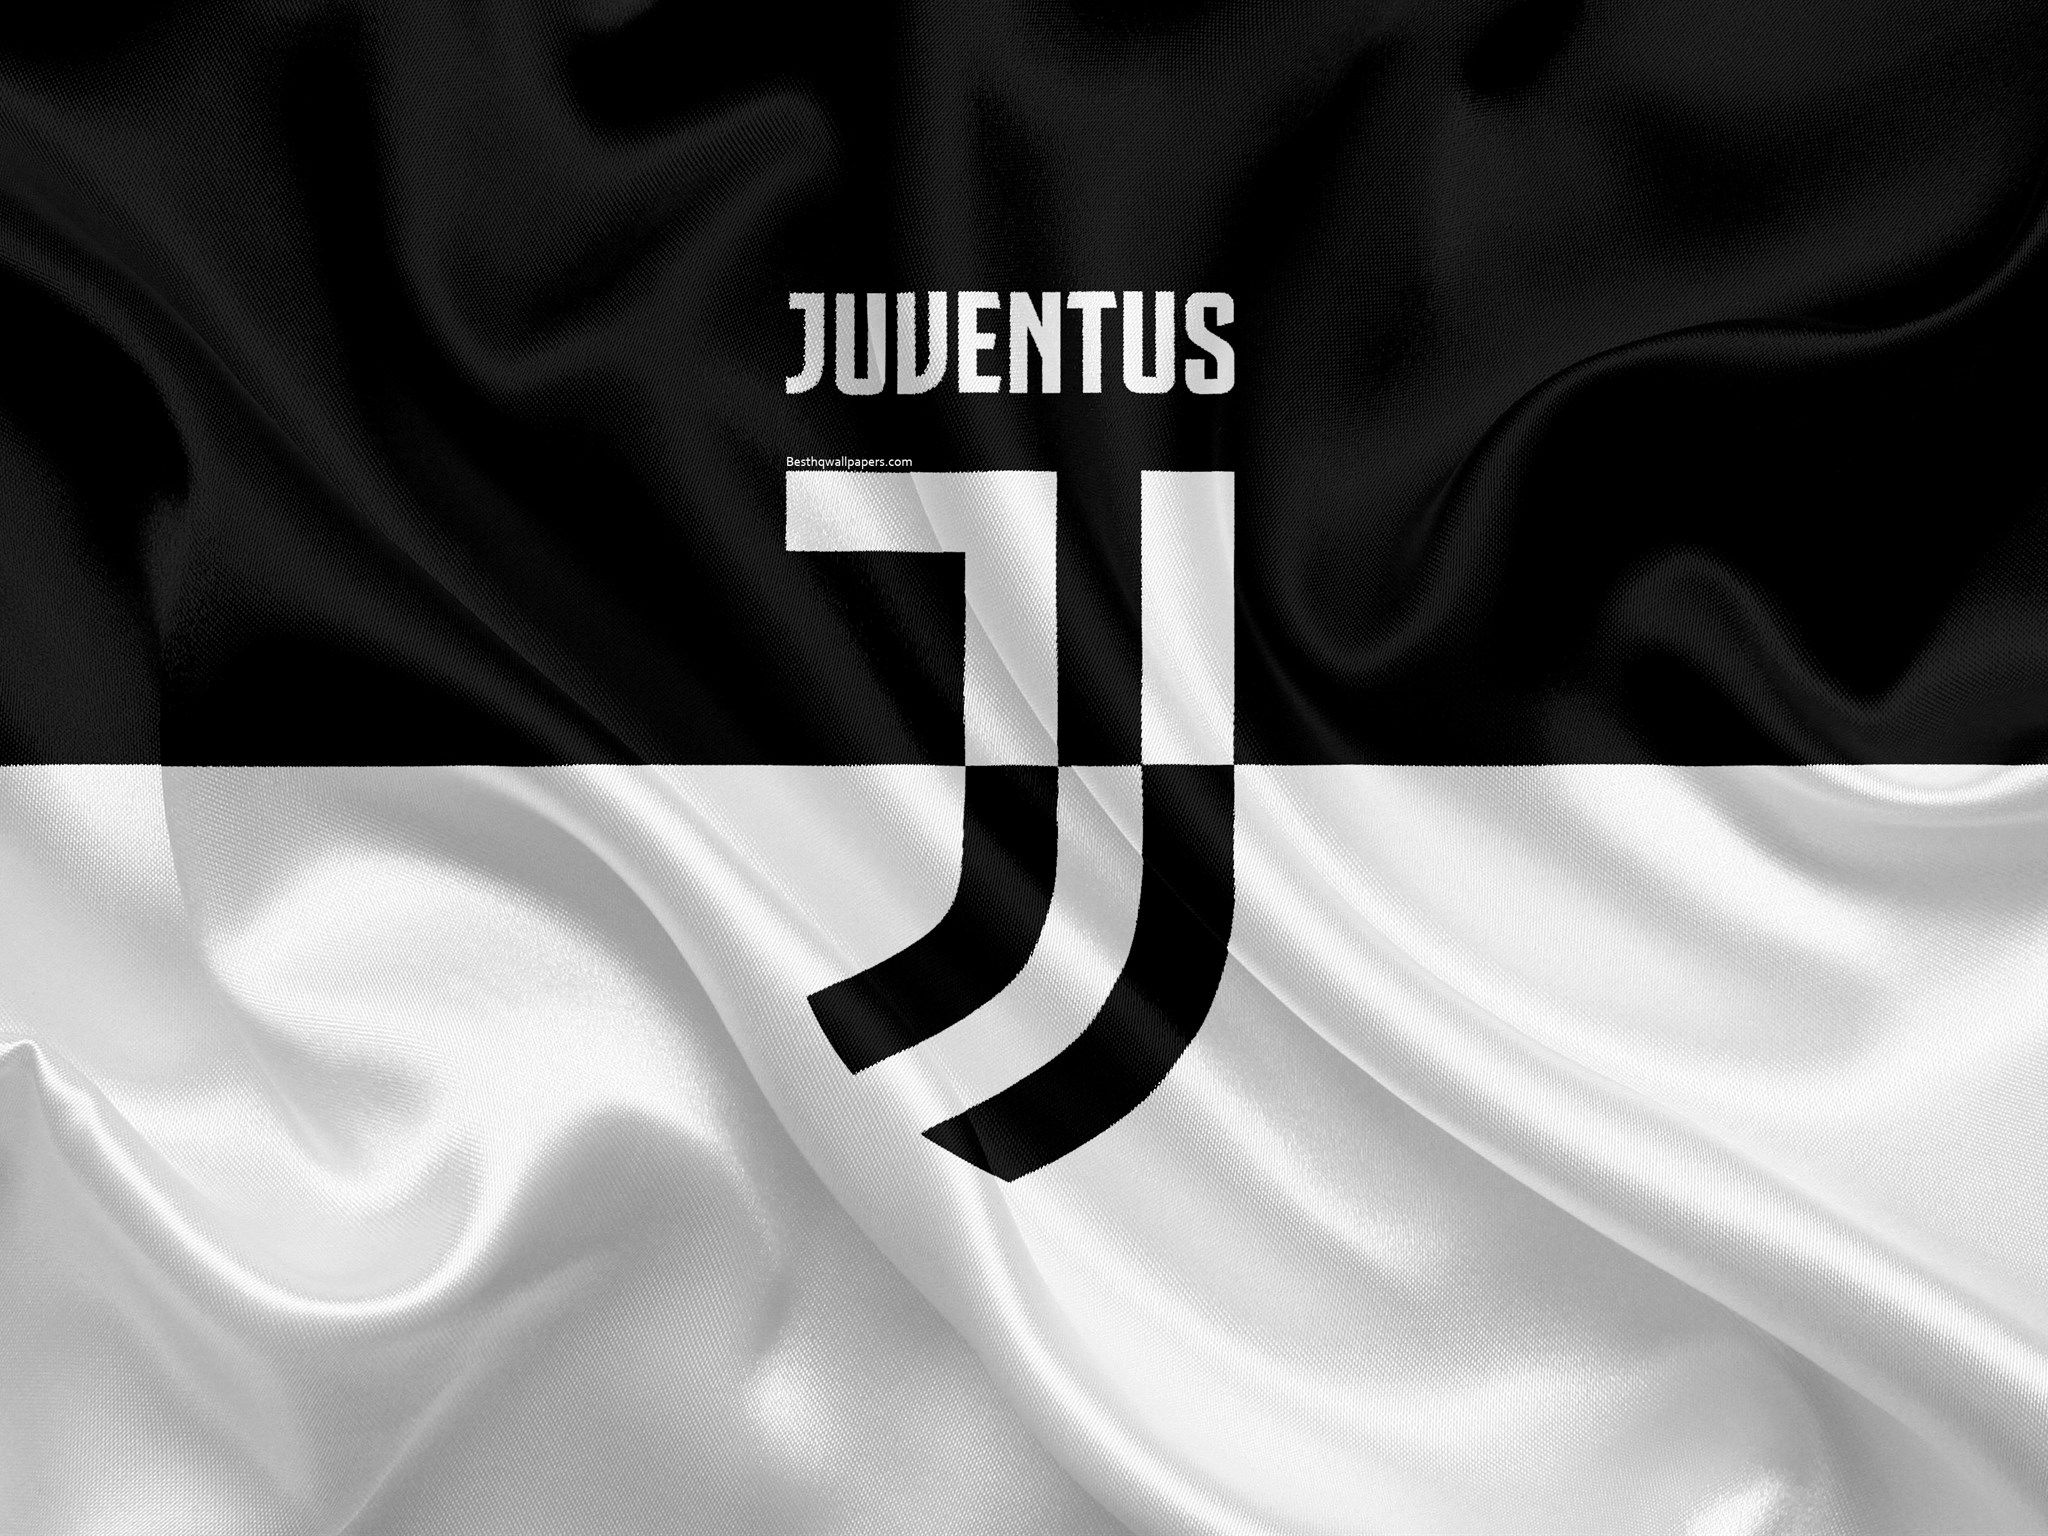 4k La Juventus In Italia In Bianco E Nero Football Club Serie A